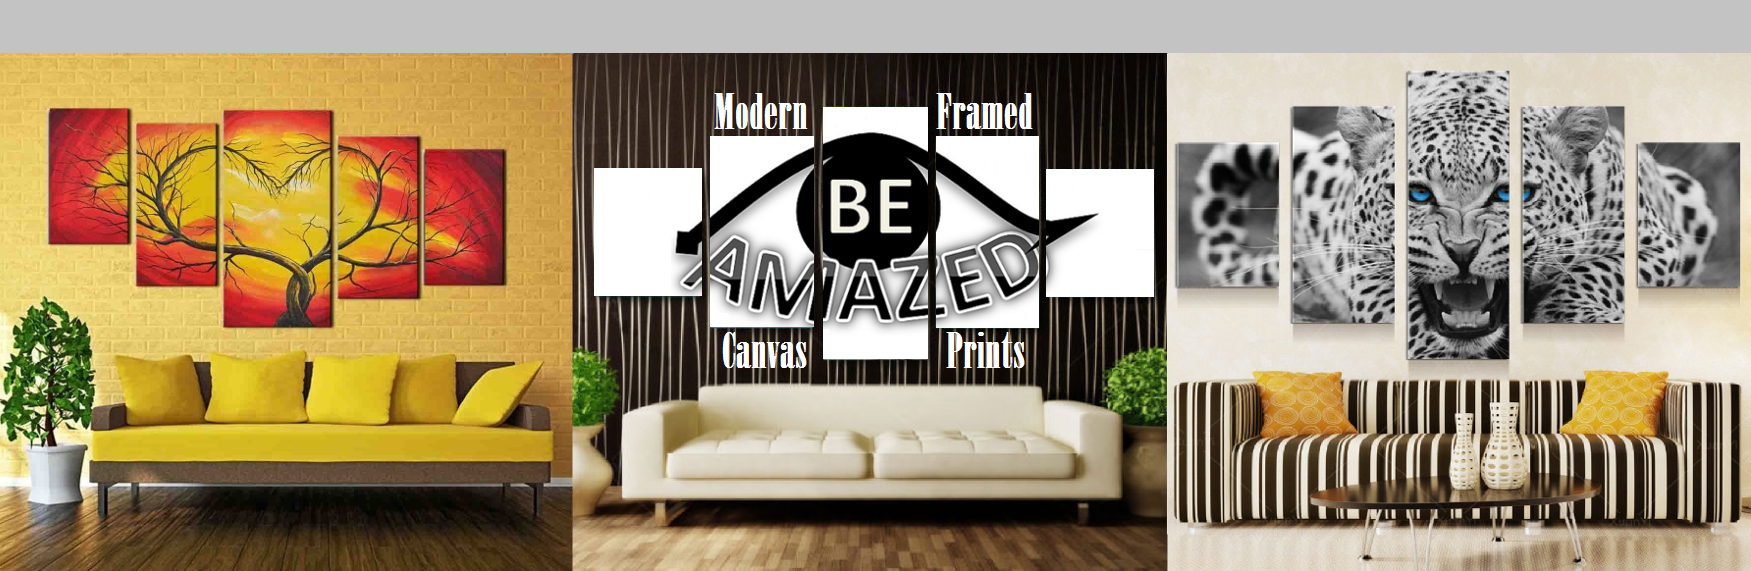 Be Amazed Perth Modern Framed Canvas Prints Home Decor Paintings Art